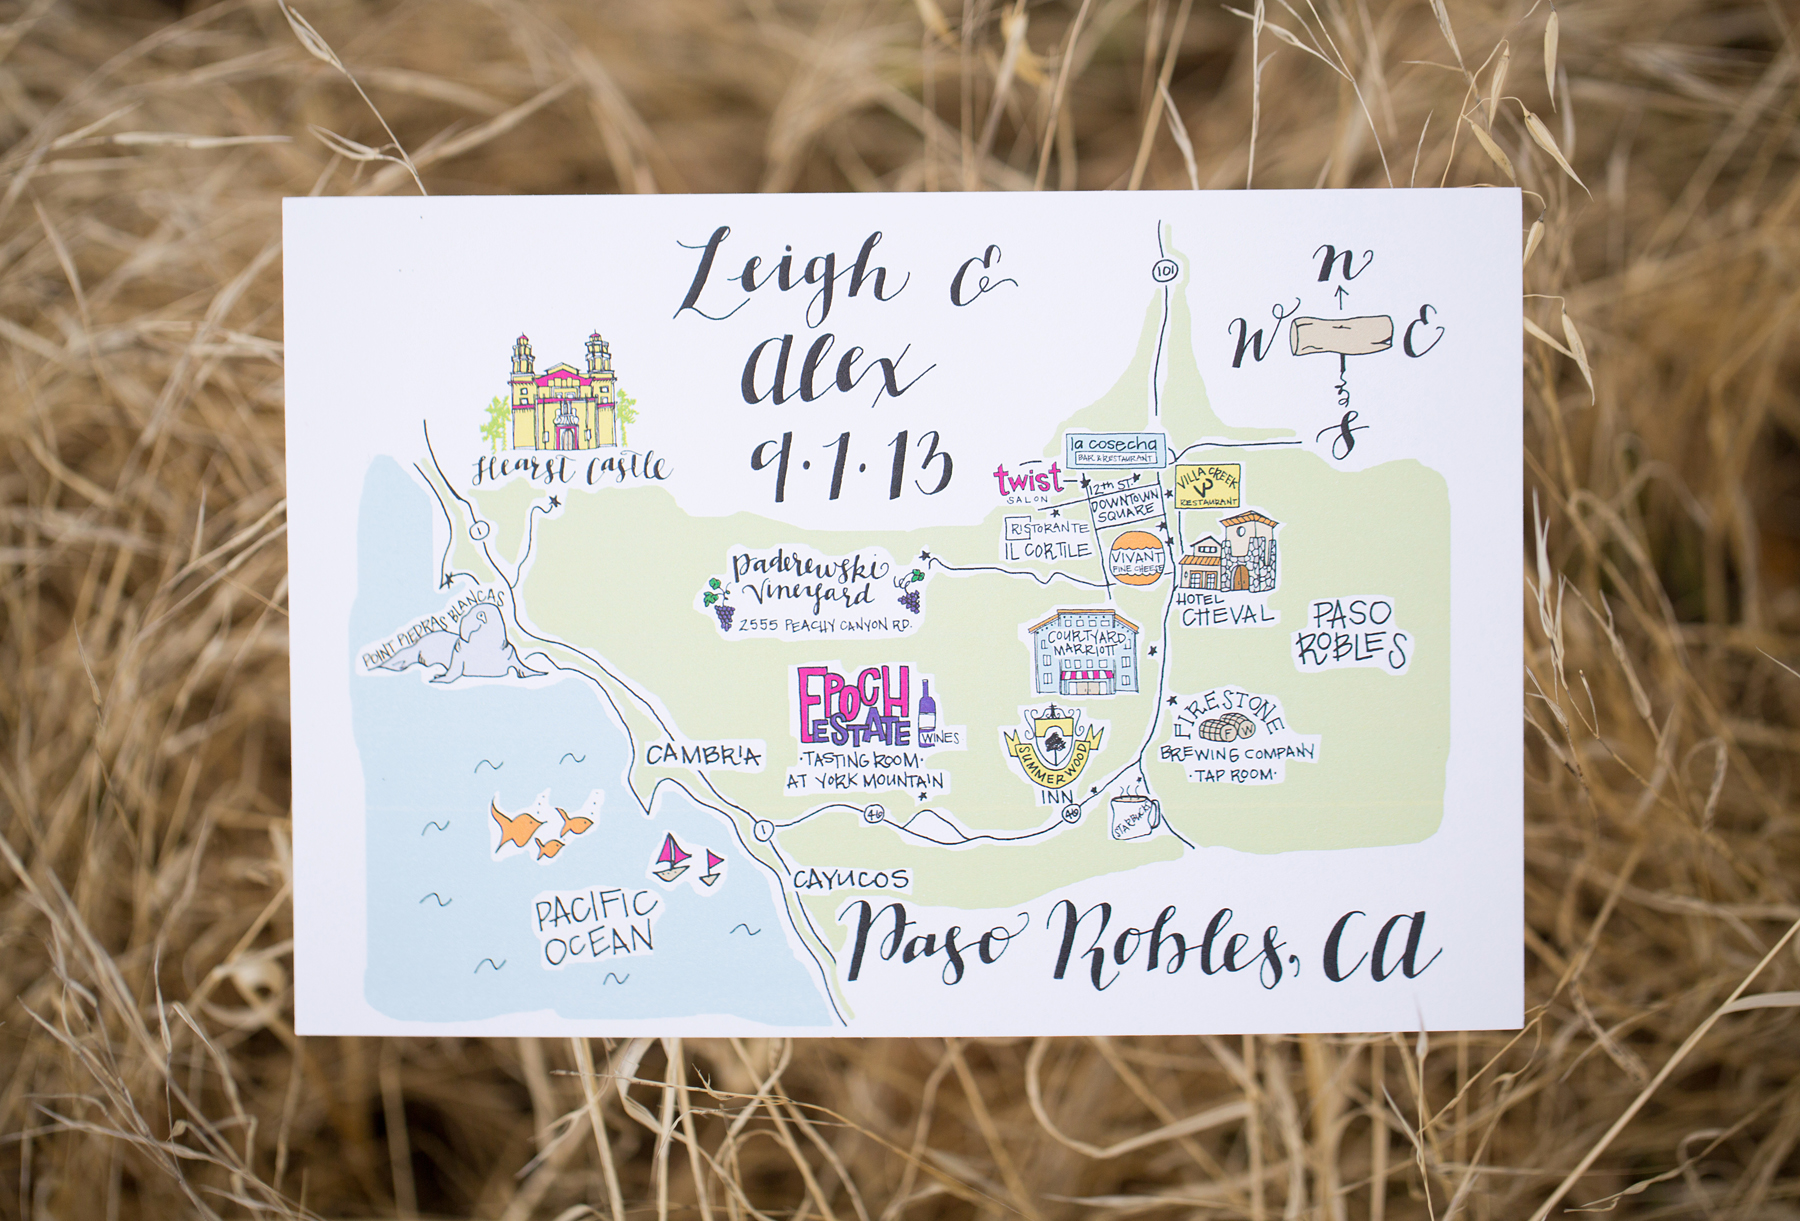 Wedding Invitations 4 Ways To Make Yours Stand Out Inside Weddings